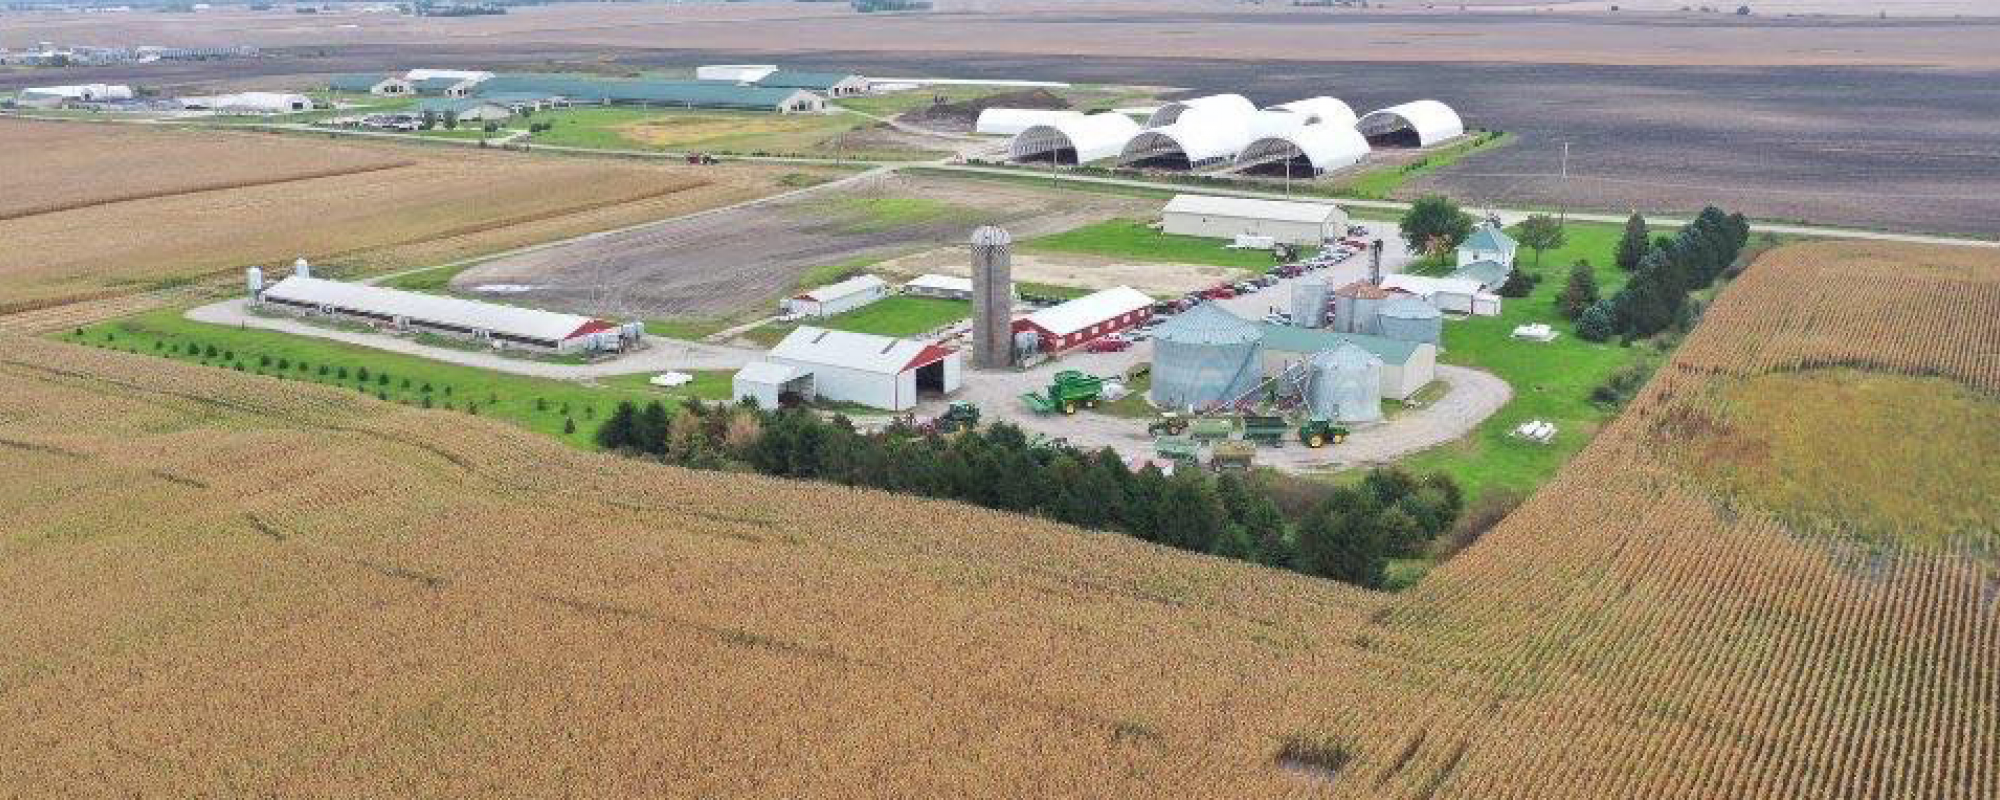 Aerial view of the Ag 450 Farm